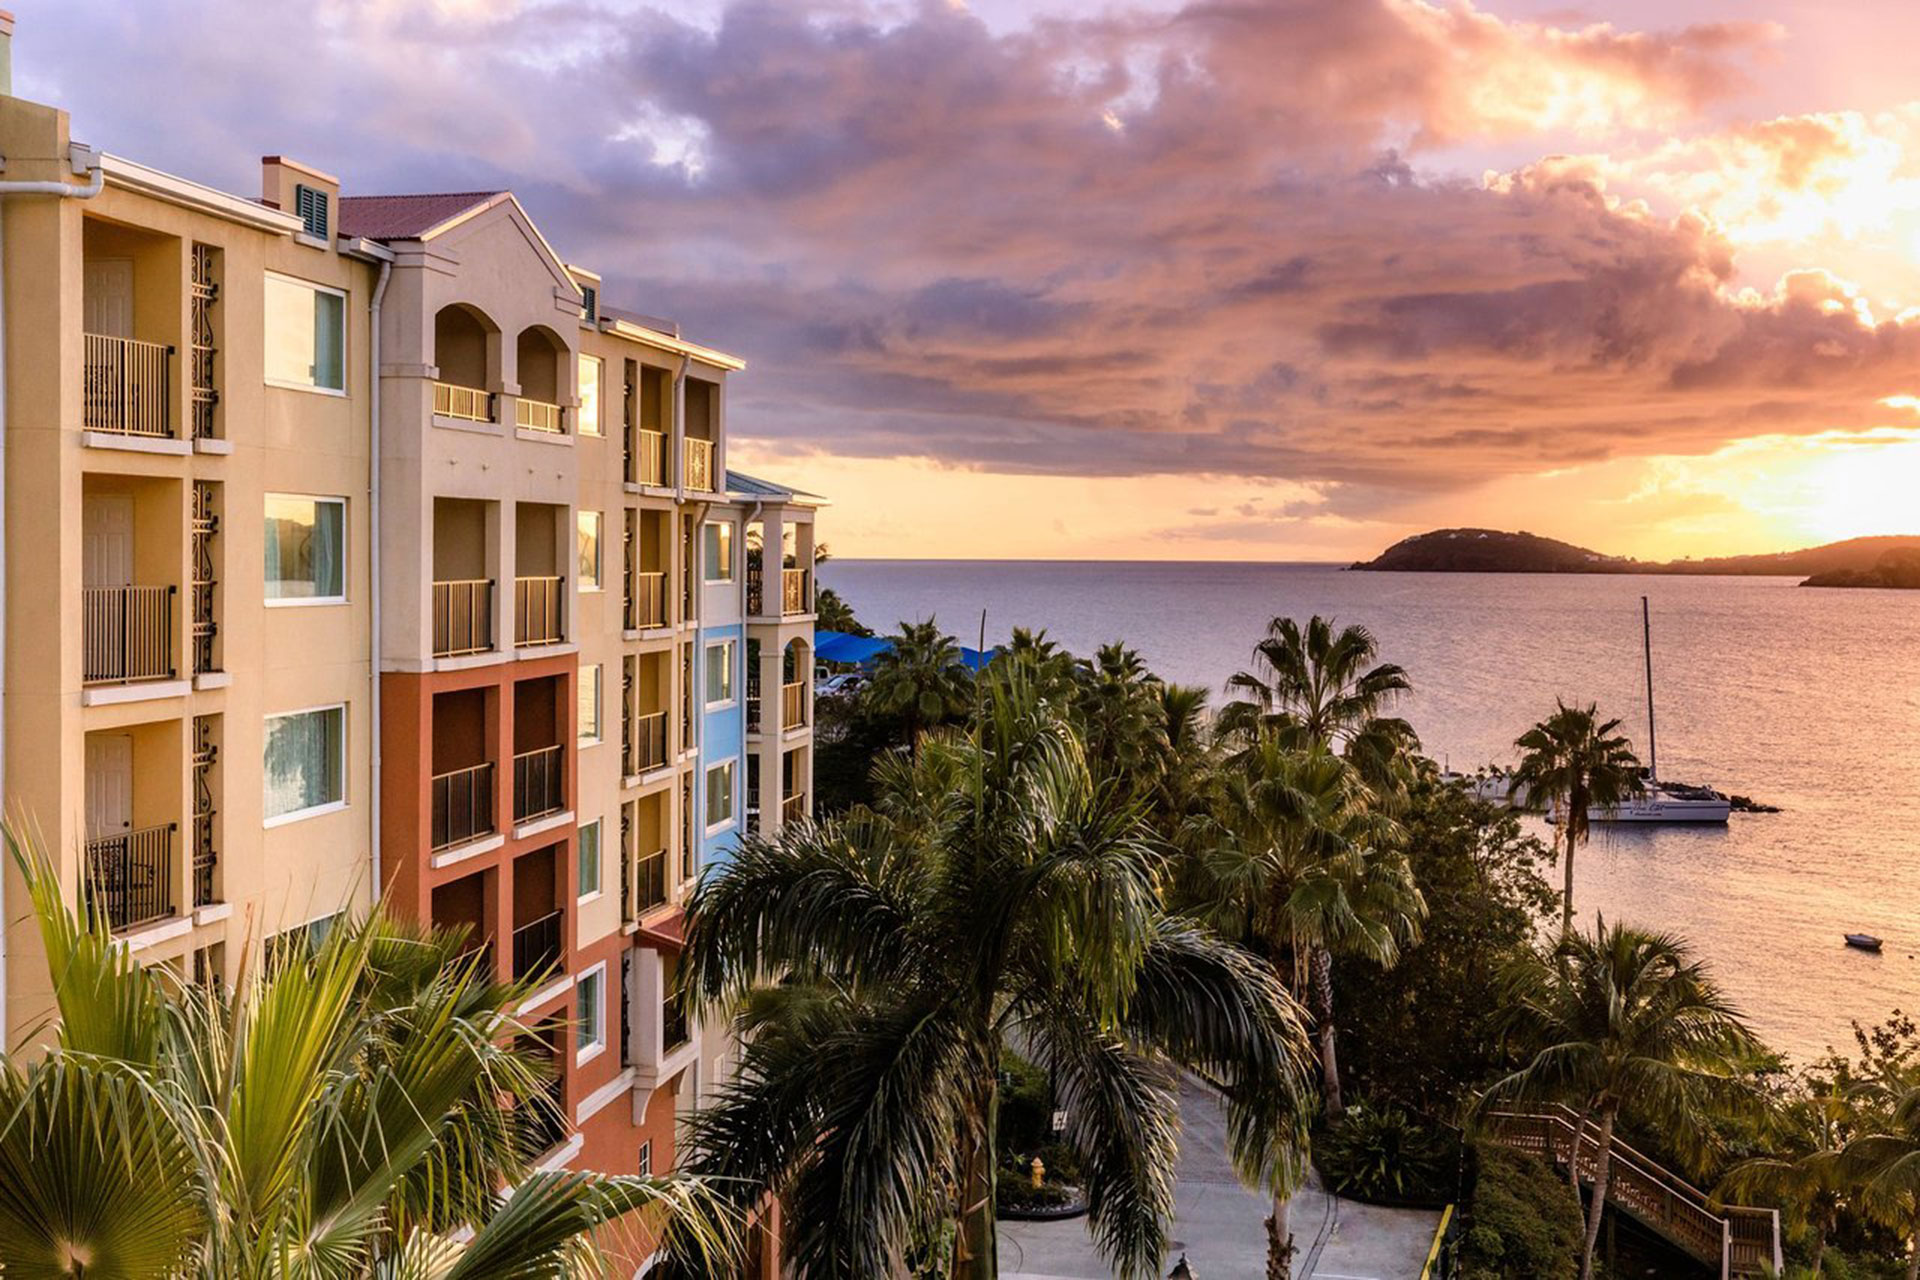 Marriott's Frenchman's Cove in St. Thomas; Courtesy of Marriott's Frenchman's Cove